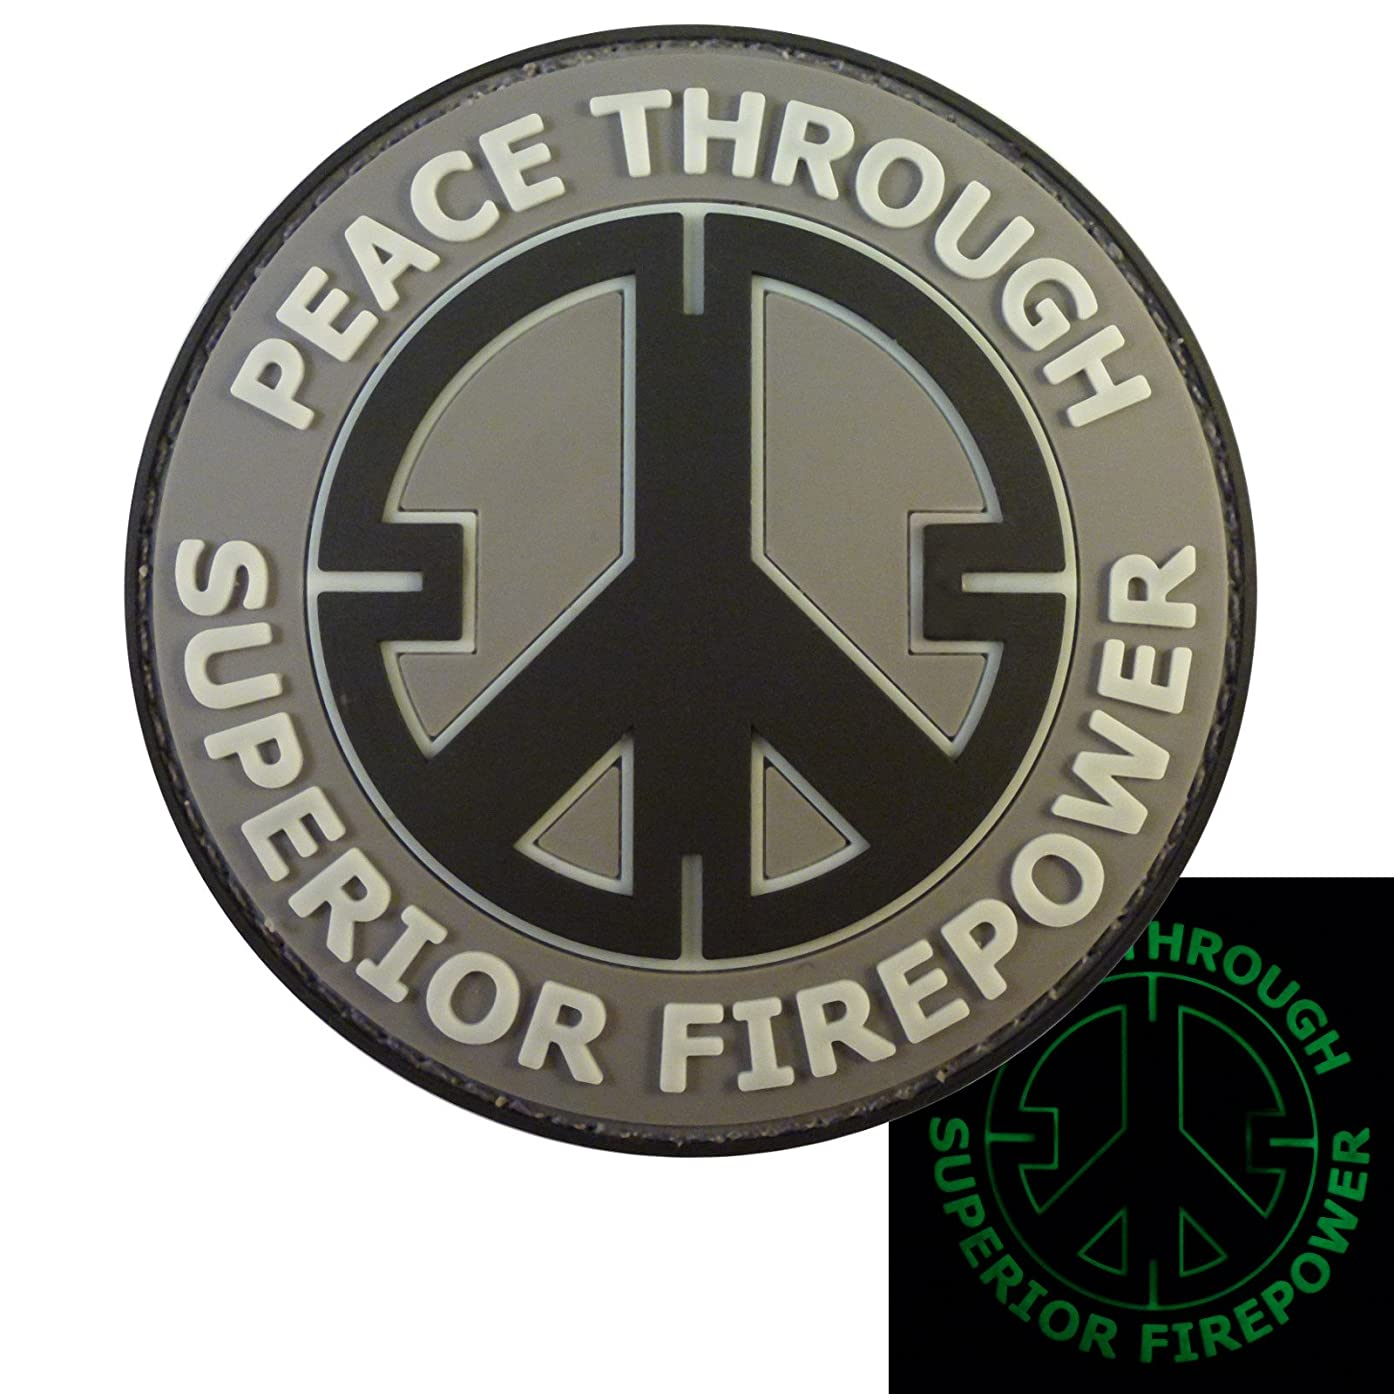 LEGEEON ACU Peace Through Superior Firepower Glow Dark Subdued Crosshair Morale PVC Rubber Touch Fastener Patch